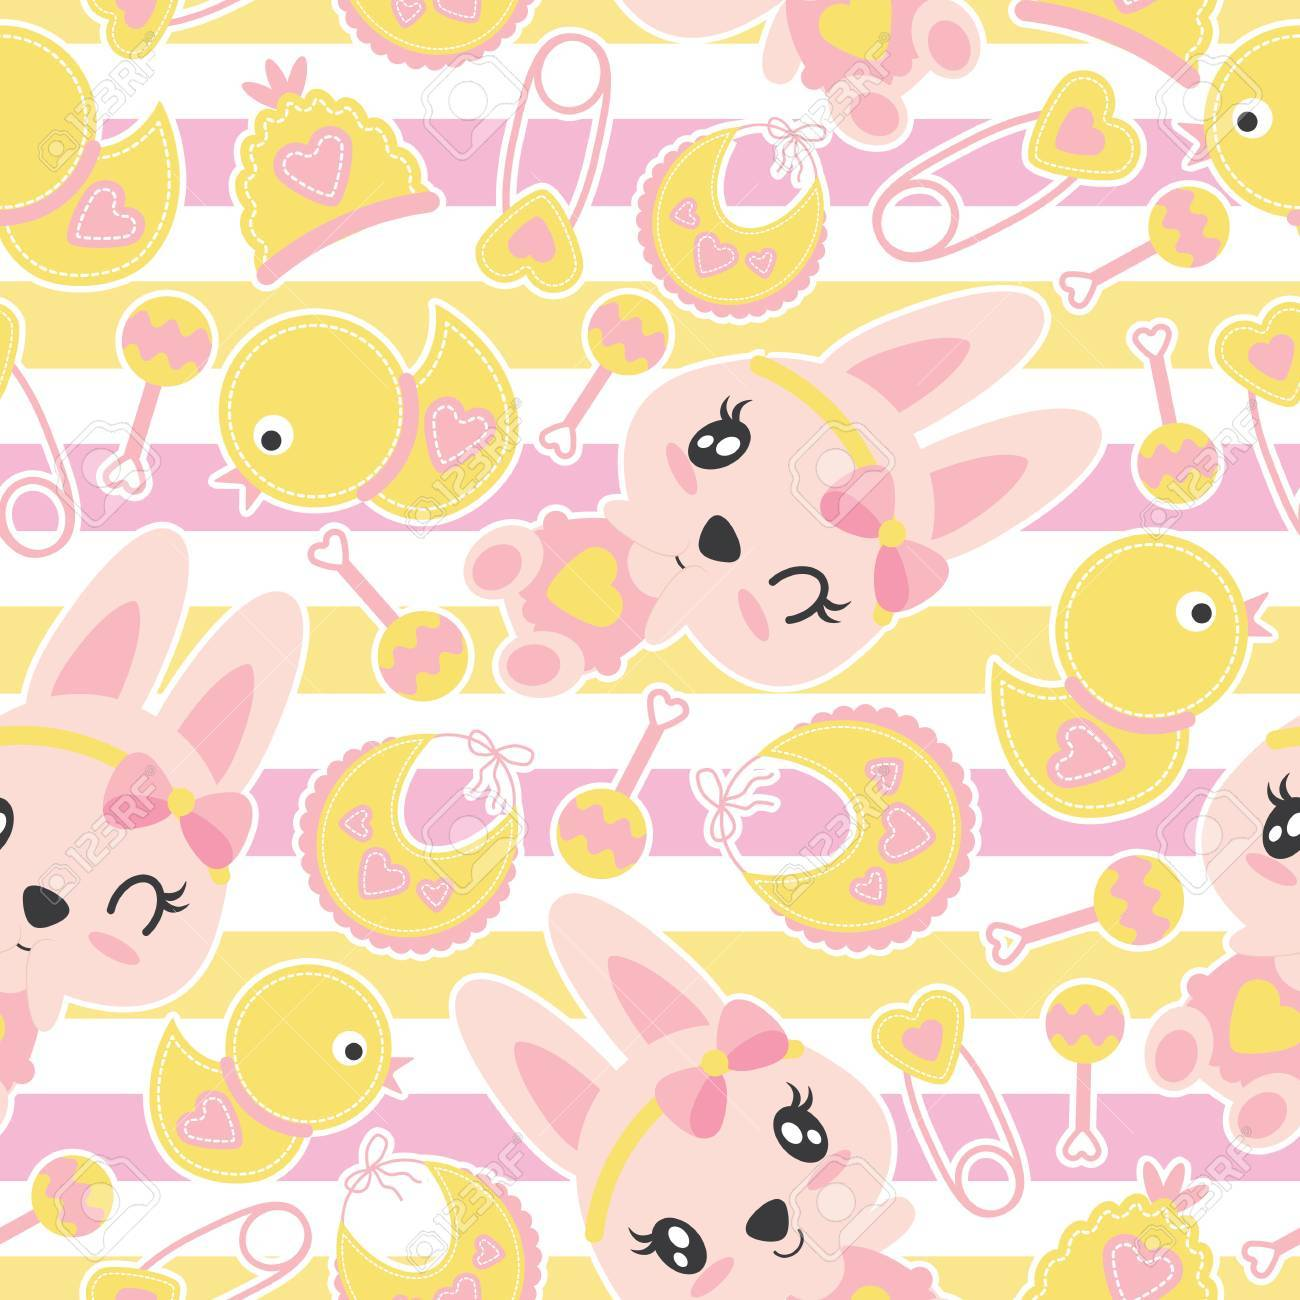 Seamless Pattern Of Cute Bunny Girls And Baby Shower Items On Royalty Free Cliparts Vectors And Stock Illustration Image 85560991